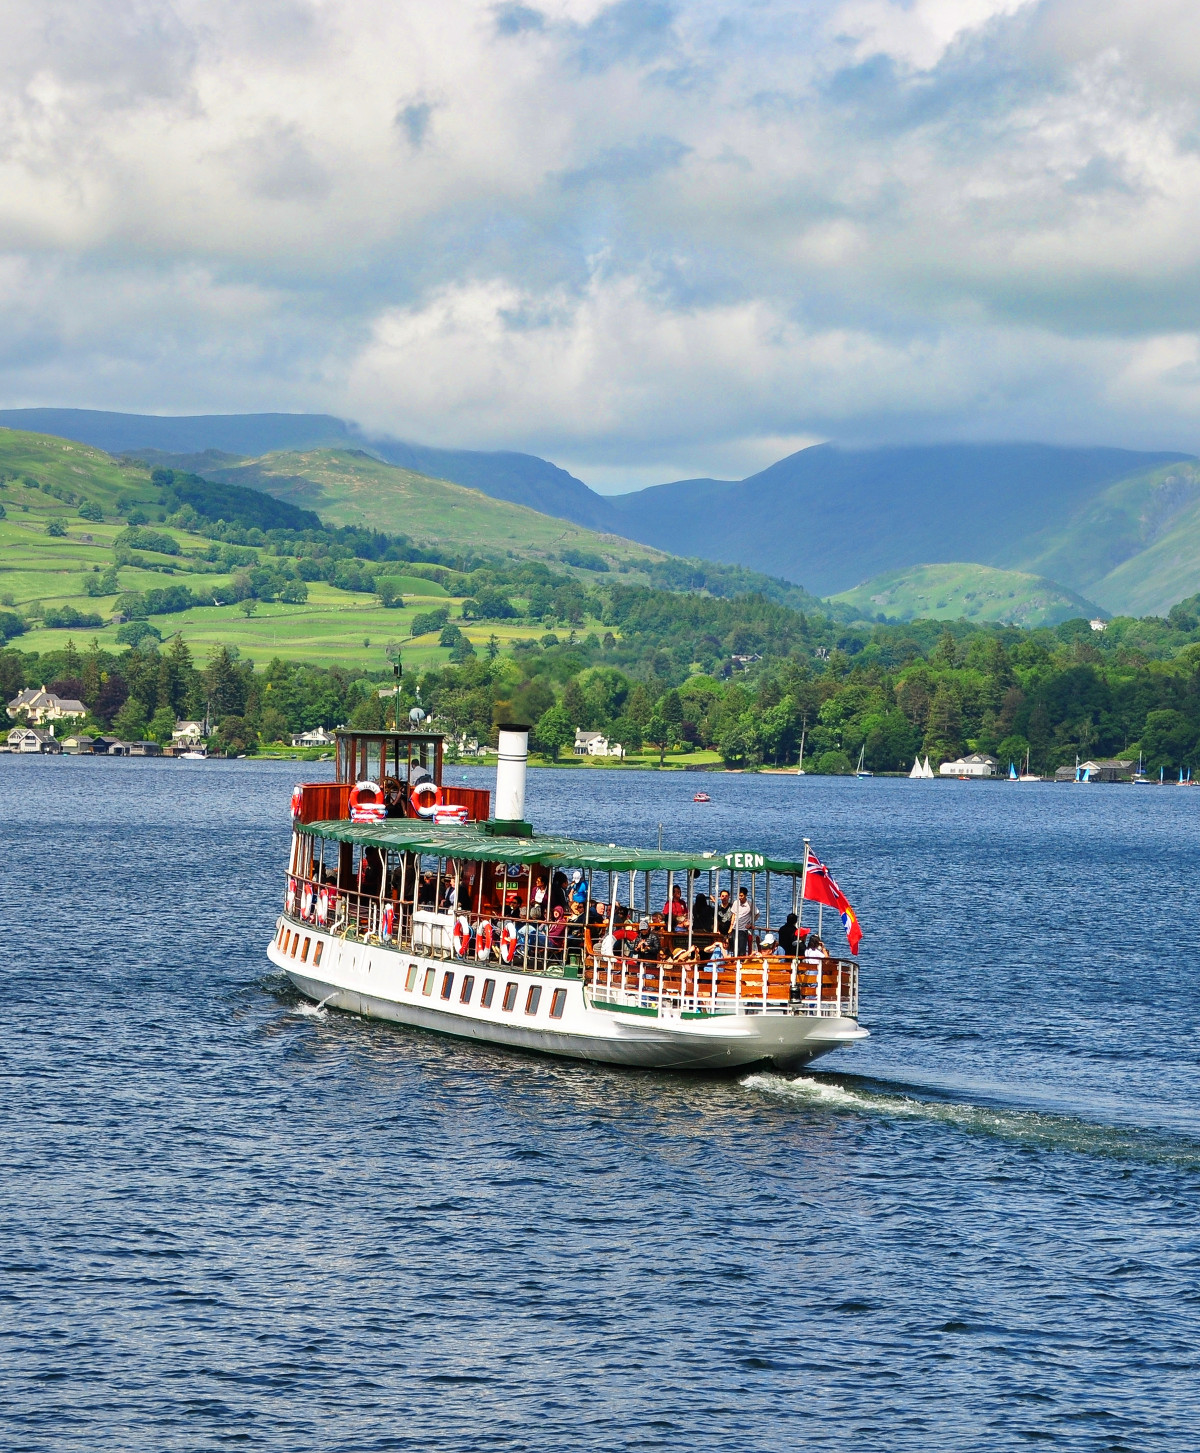 MV Tern built in 1891 crossing Windermere. Credit RuthAS